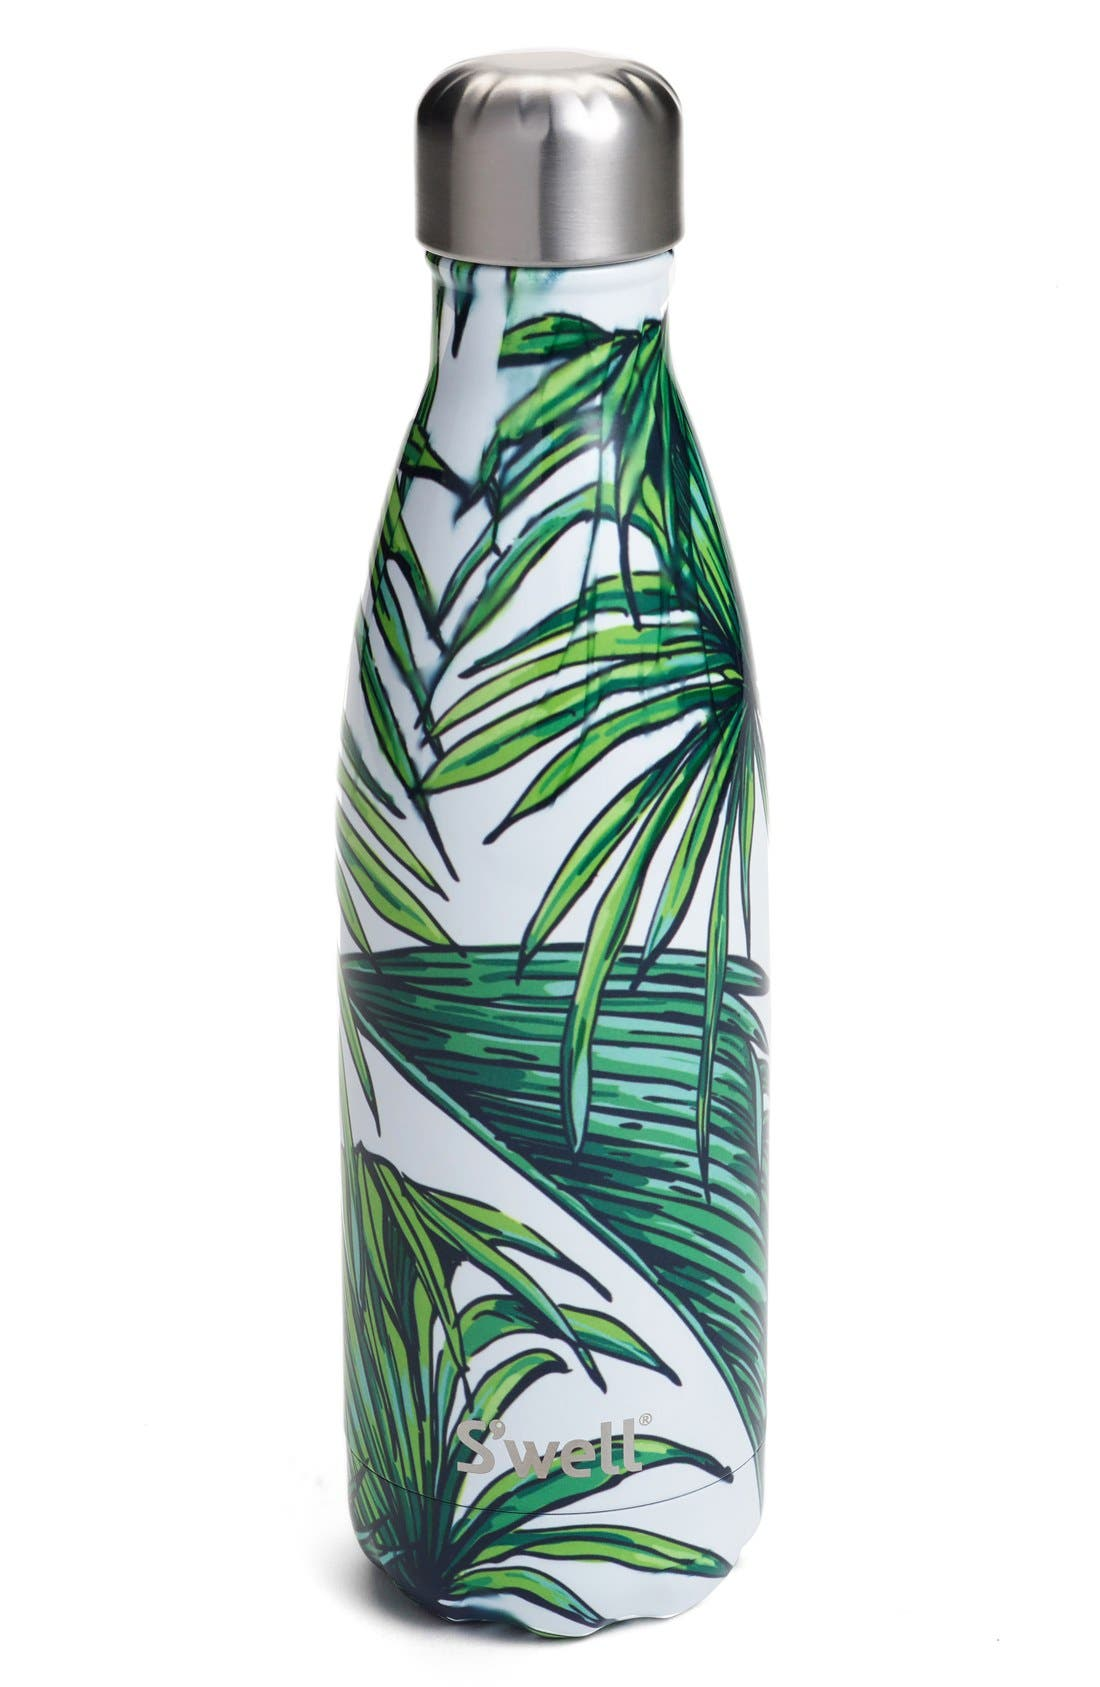 S'well Waikiki Stainless Steel Water Bottle